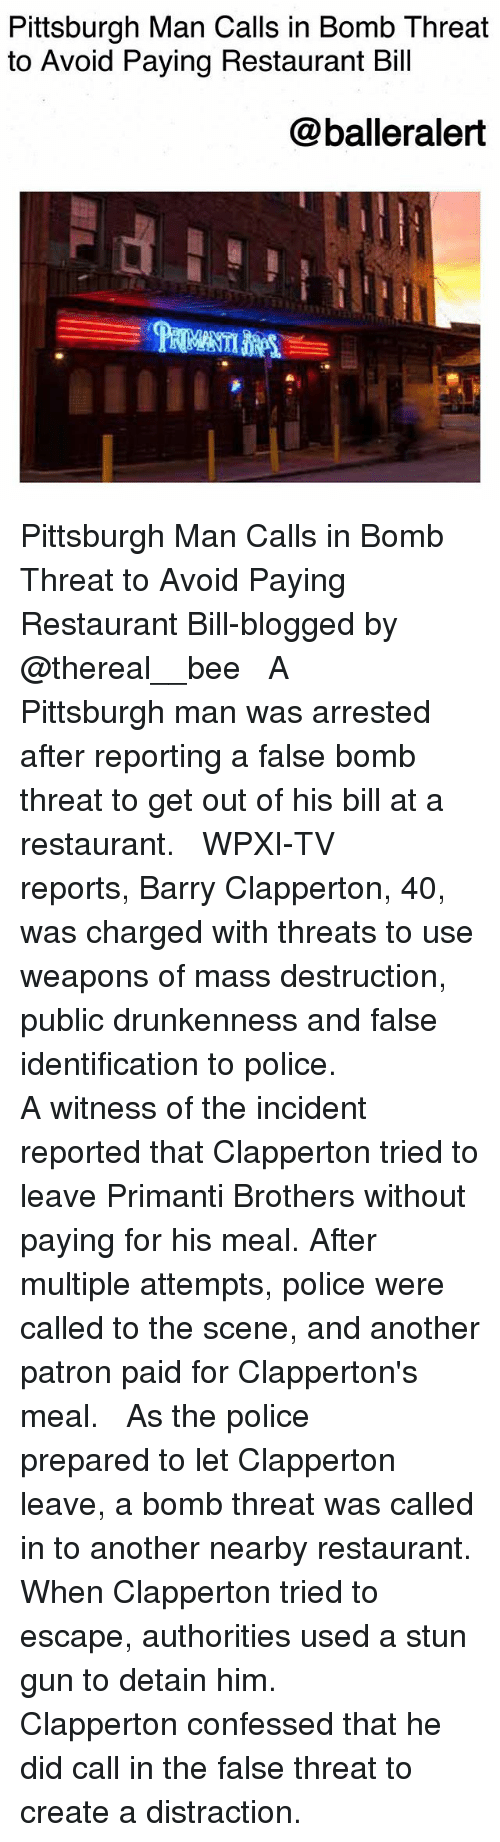 Memes, Police, and Pittsburgh: Pittsburgh Man Calls in Bomb Threat  to Avoid Paying Restaurant Bill  @balleralert Pittsburgh Man Calls in Bomb Threat to Avoid Paying Restaurant Bill-blogged by @thereal__bee ⠀⠀⠀⠀⠀⠀⠀⠀⠀ ⠀⠀ A Pittsburgh man was arrested after reporting a false bomb threat to get out of his bill at a restaurant. ⠀⠀⠀⠀⠀⠀⠀⠀⠀ ⠀⠀ WPXI-TV reports, Barry Clapperton, 40, was charged with threats to use weapons of mass destruction, public drunkenness and false identification to police. ⠀⠀⠀⠀⠀⠀⠀⠀⠀ ⠀⠀ A witness of the incident reported that Clapperton tried to leave Primanti Brothers without paying for his meal. After multiple attempts, police were called to the scene, and another patron paid for Clapperton's meal. ⠀⠀⠀⠀⠀⠀⠀⠀⠀ ⠀⠀ As the police prepared to let Clapperton leave, a bomb threat was called in to another nearby restaurant. When Clapperton tried to escape, authorities used a stun gun to detain him. ⠀⠀⠀⠀⠀⠀⠀⠀⠀ ⠀⠀ Clapperton confessed that he did call in the false threat to create a distraction.